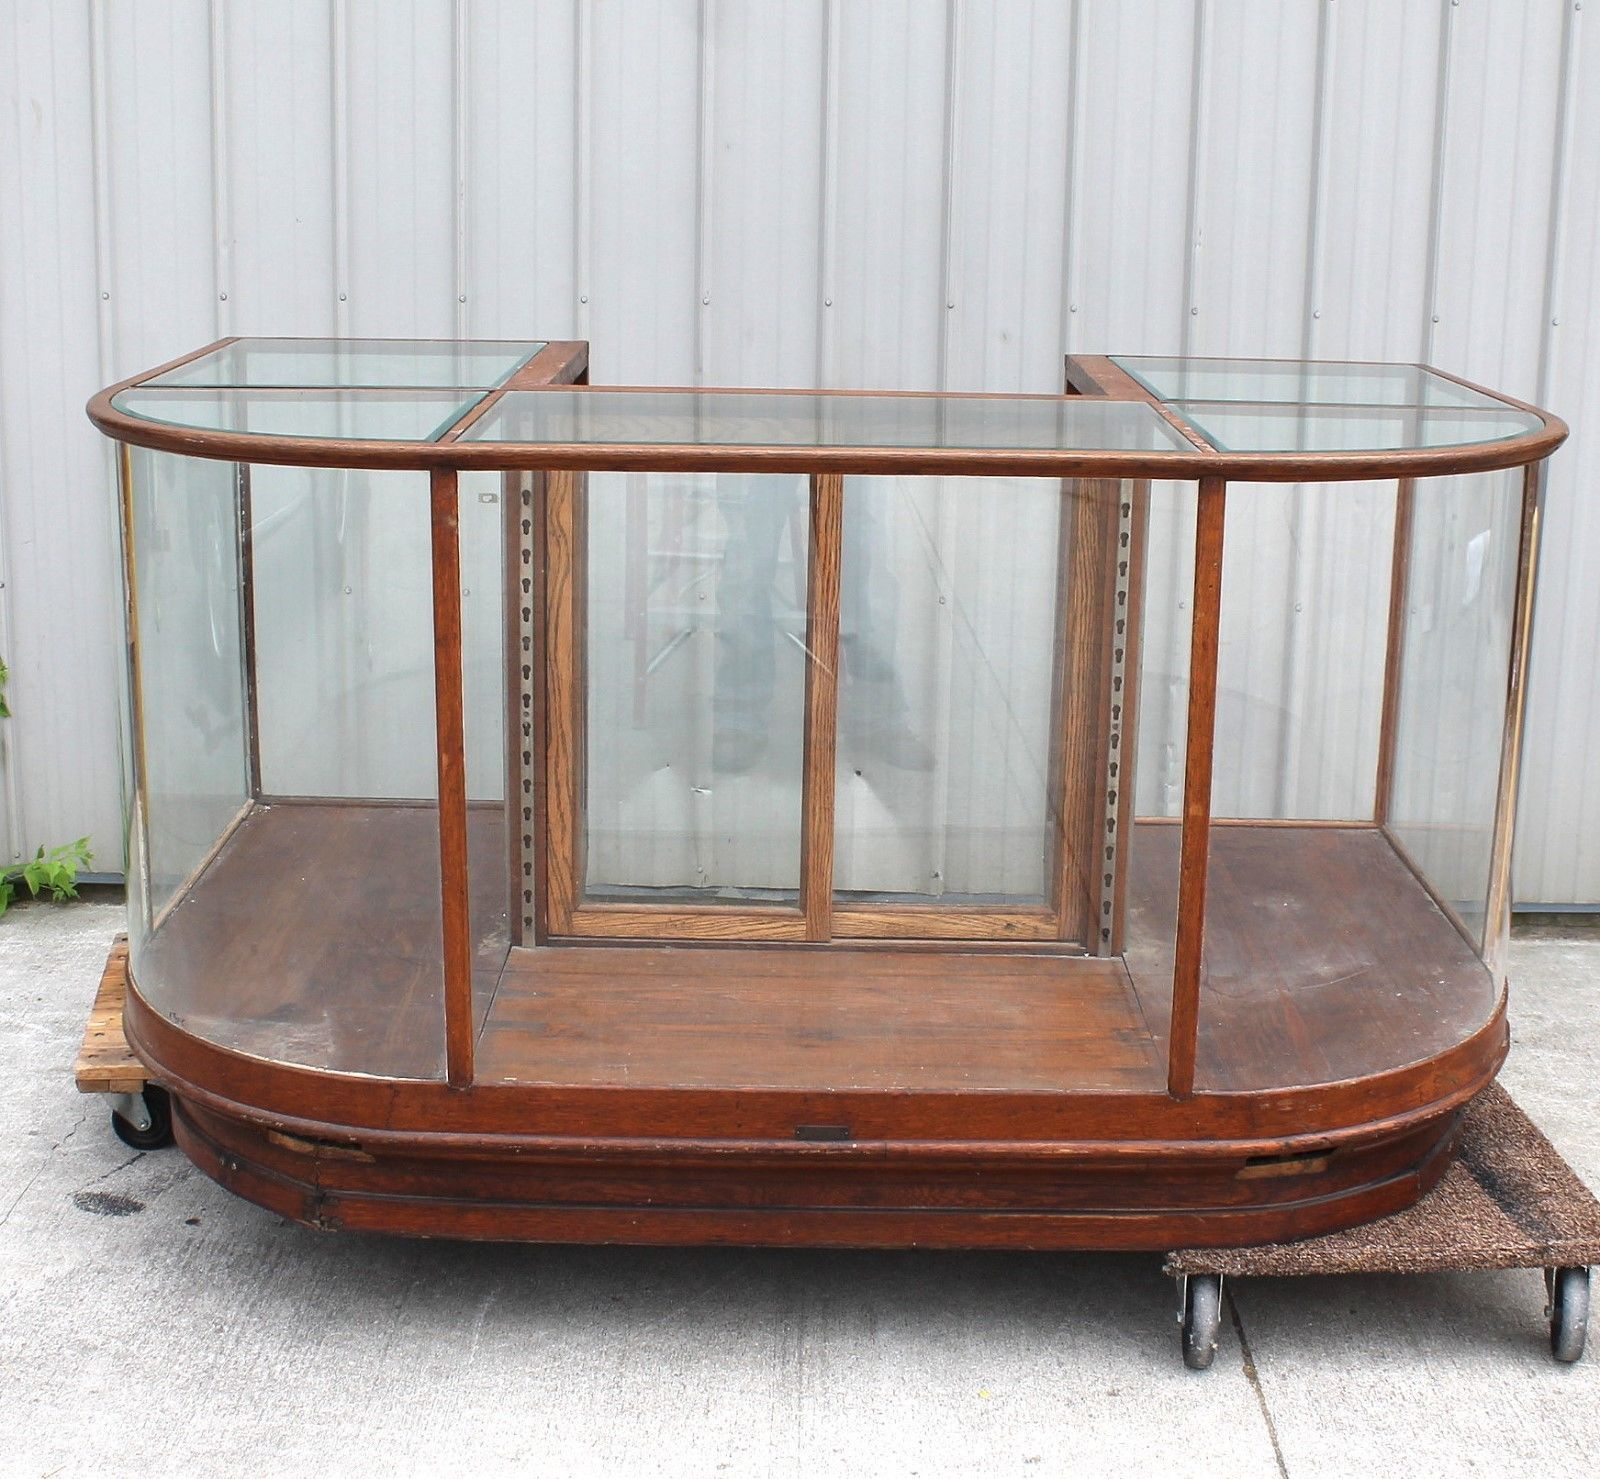 In Antiques, Mercantile, Trades & Factories, Display Cases